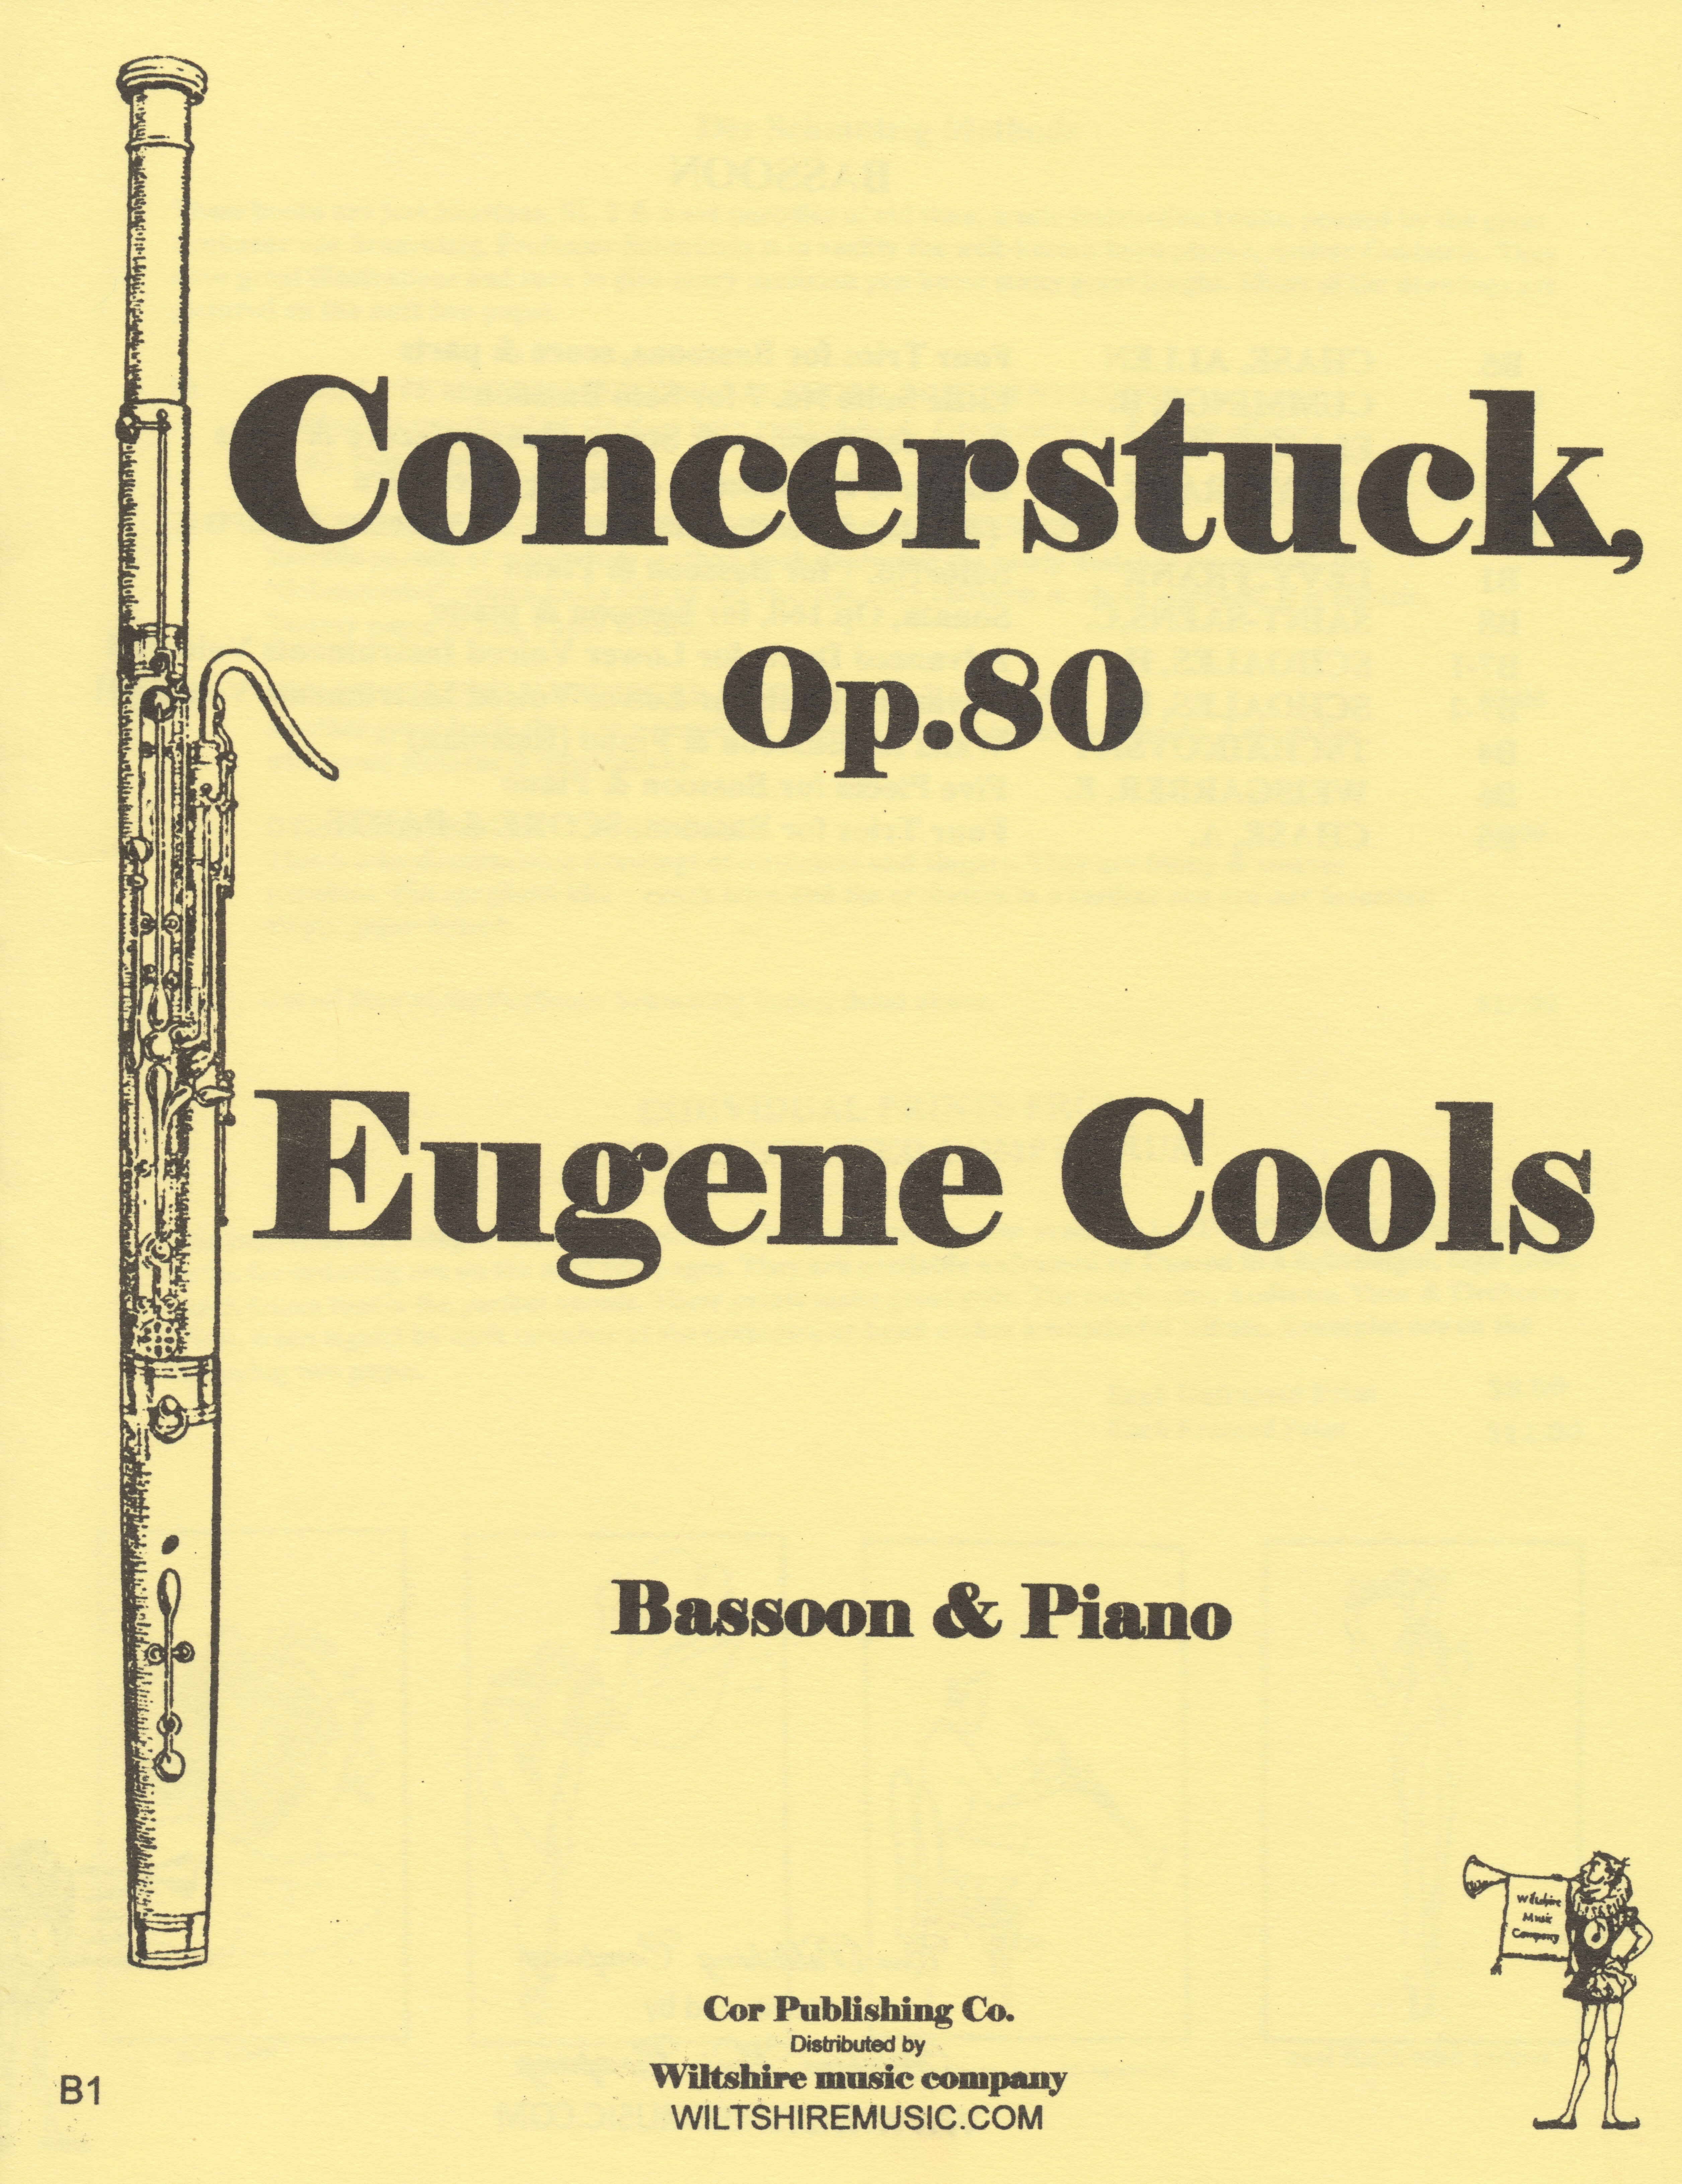 concerstuck, op.80, Eugene Cools, bassoon & piano